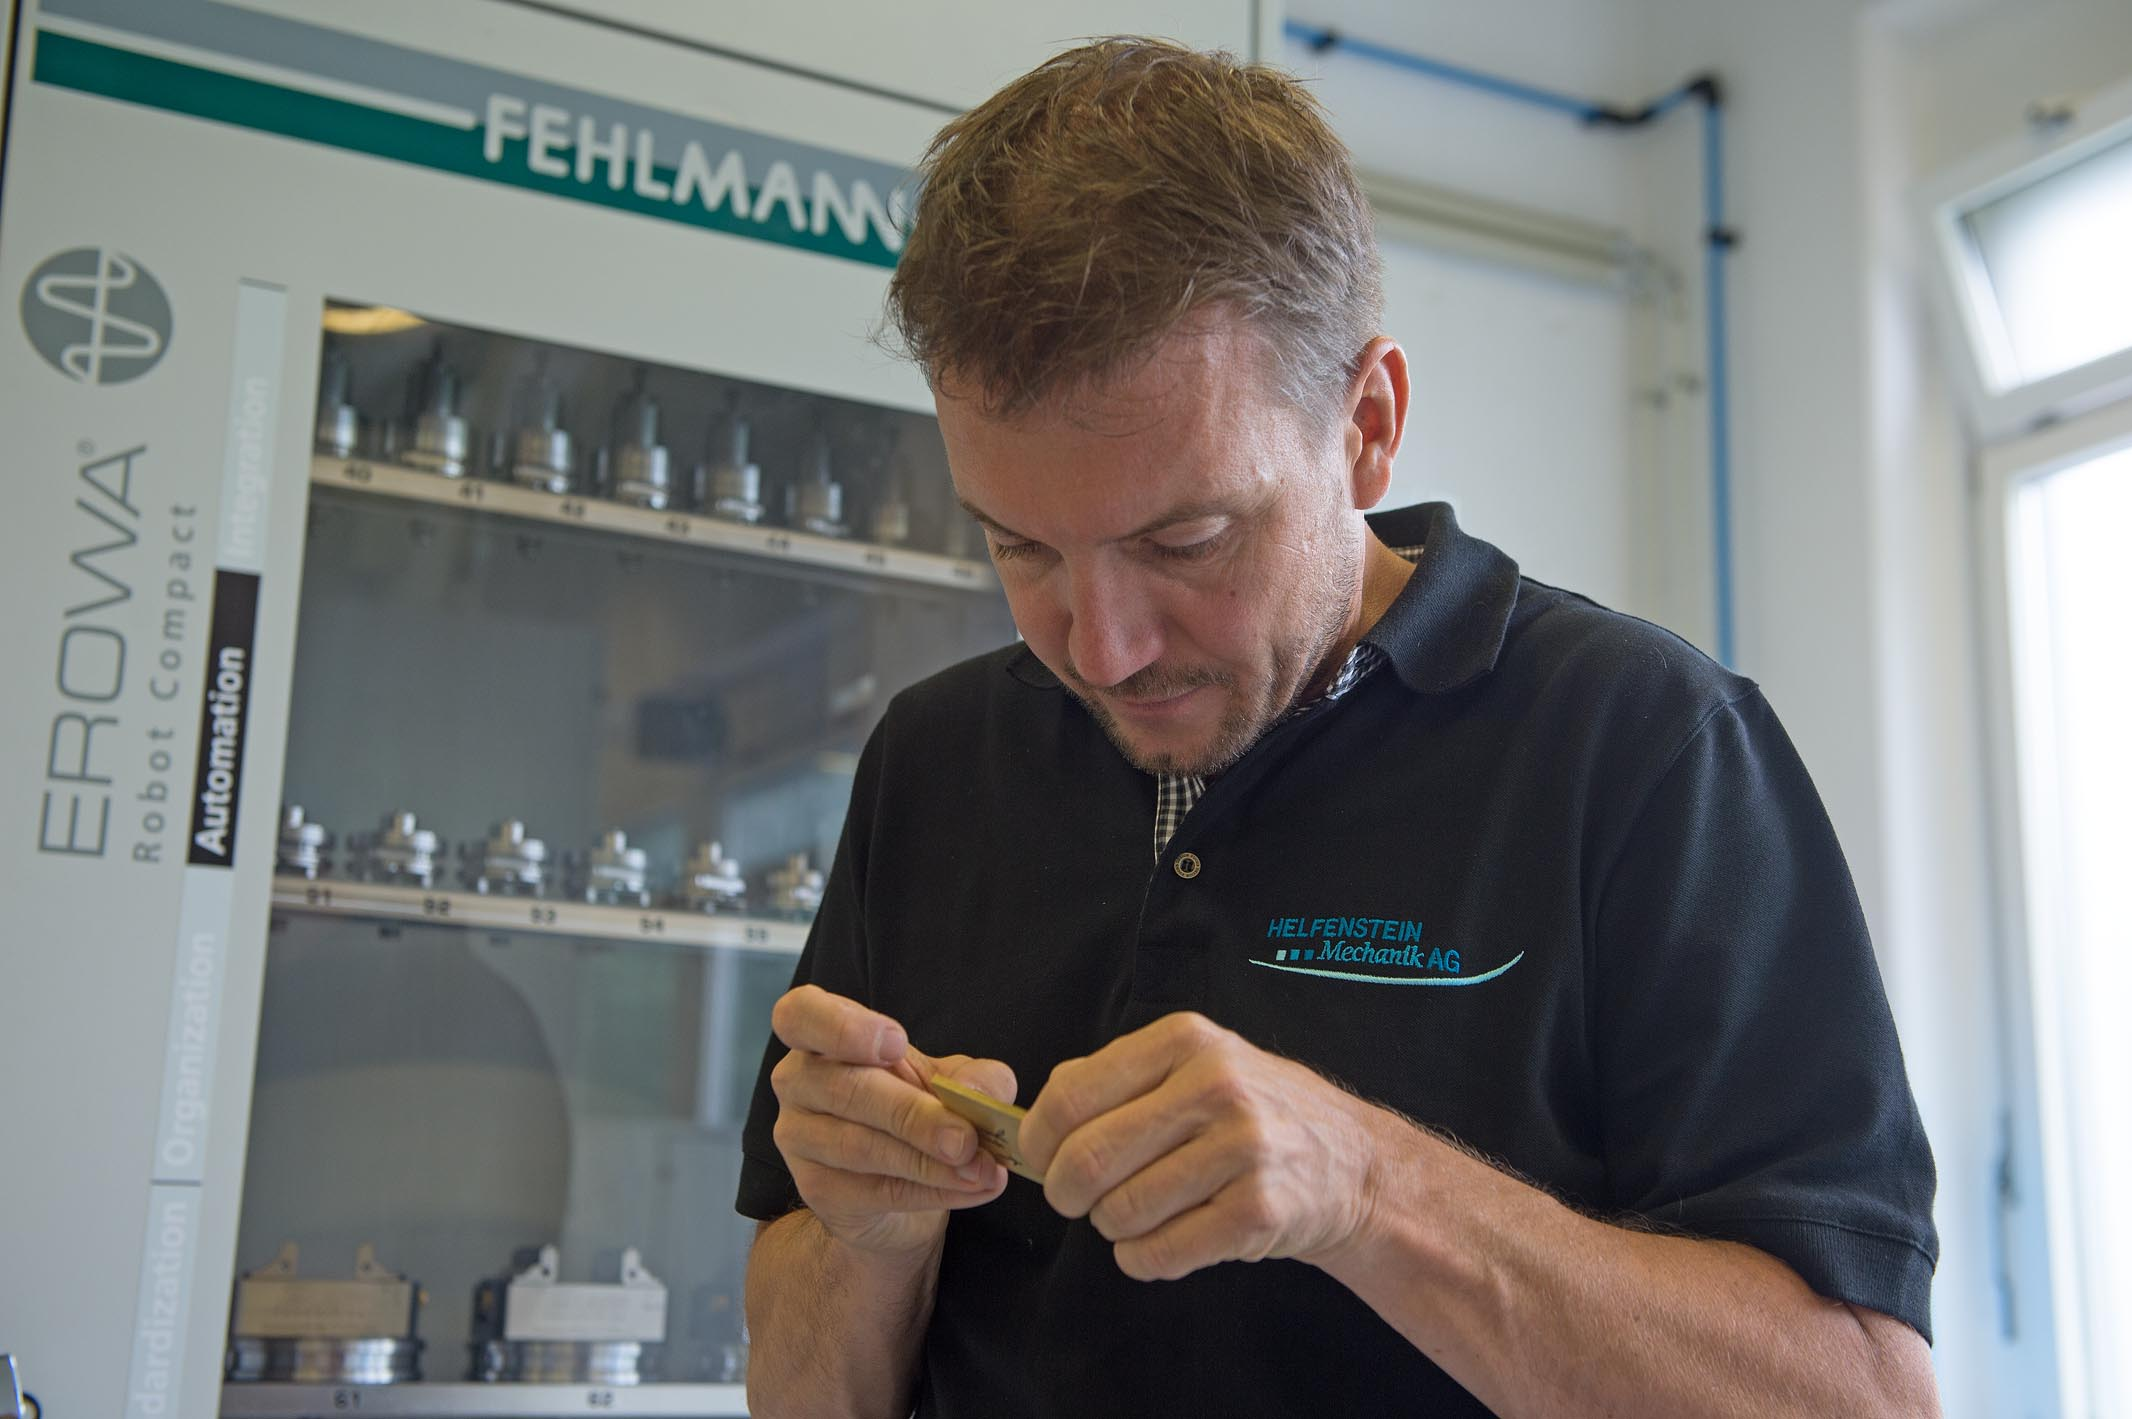 CEO Reto Helfenstein, too, assesses the machining, before the processing continues.